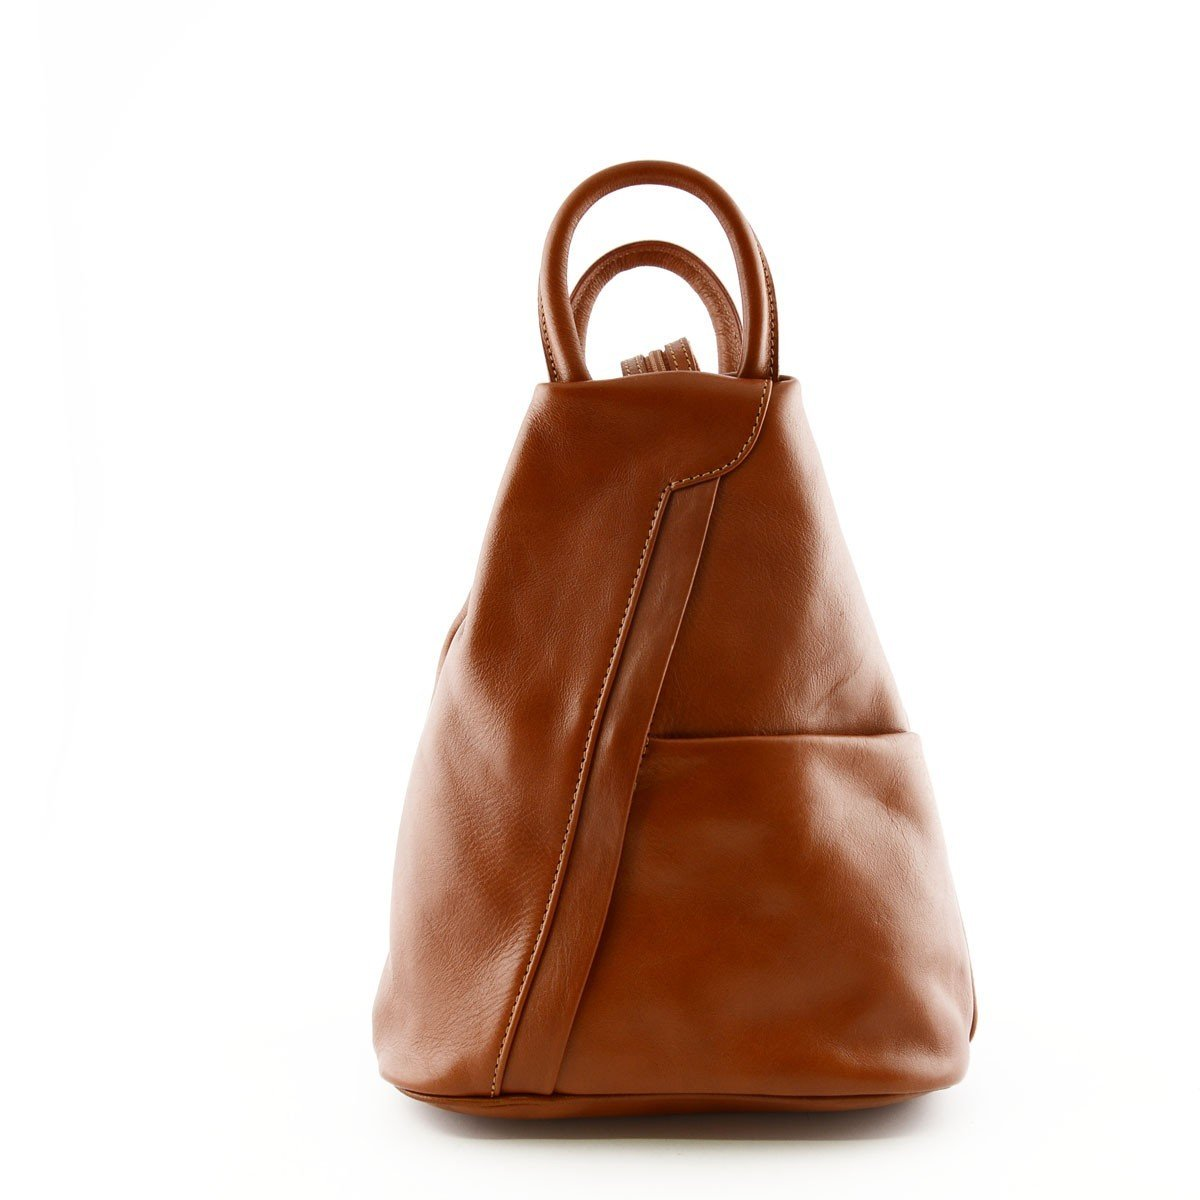 Made In Italy Backpack For Woman In Genuine Leather With Adjustable Straps Color Cognac - Backpack   B017N8YN2M